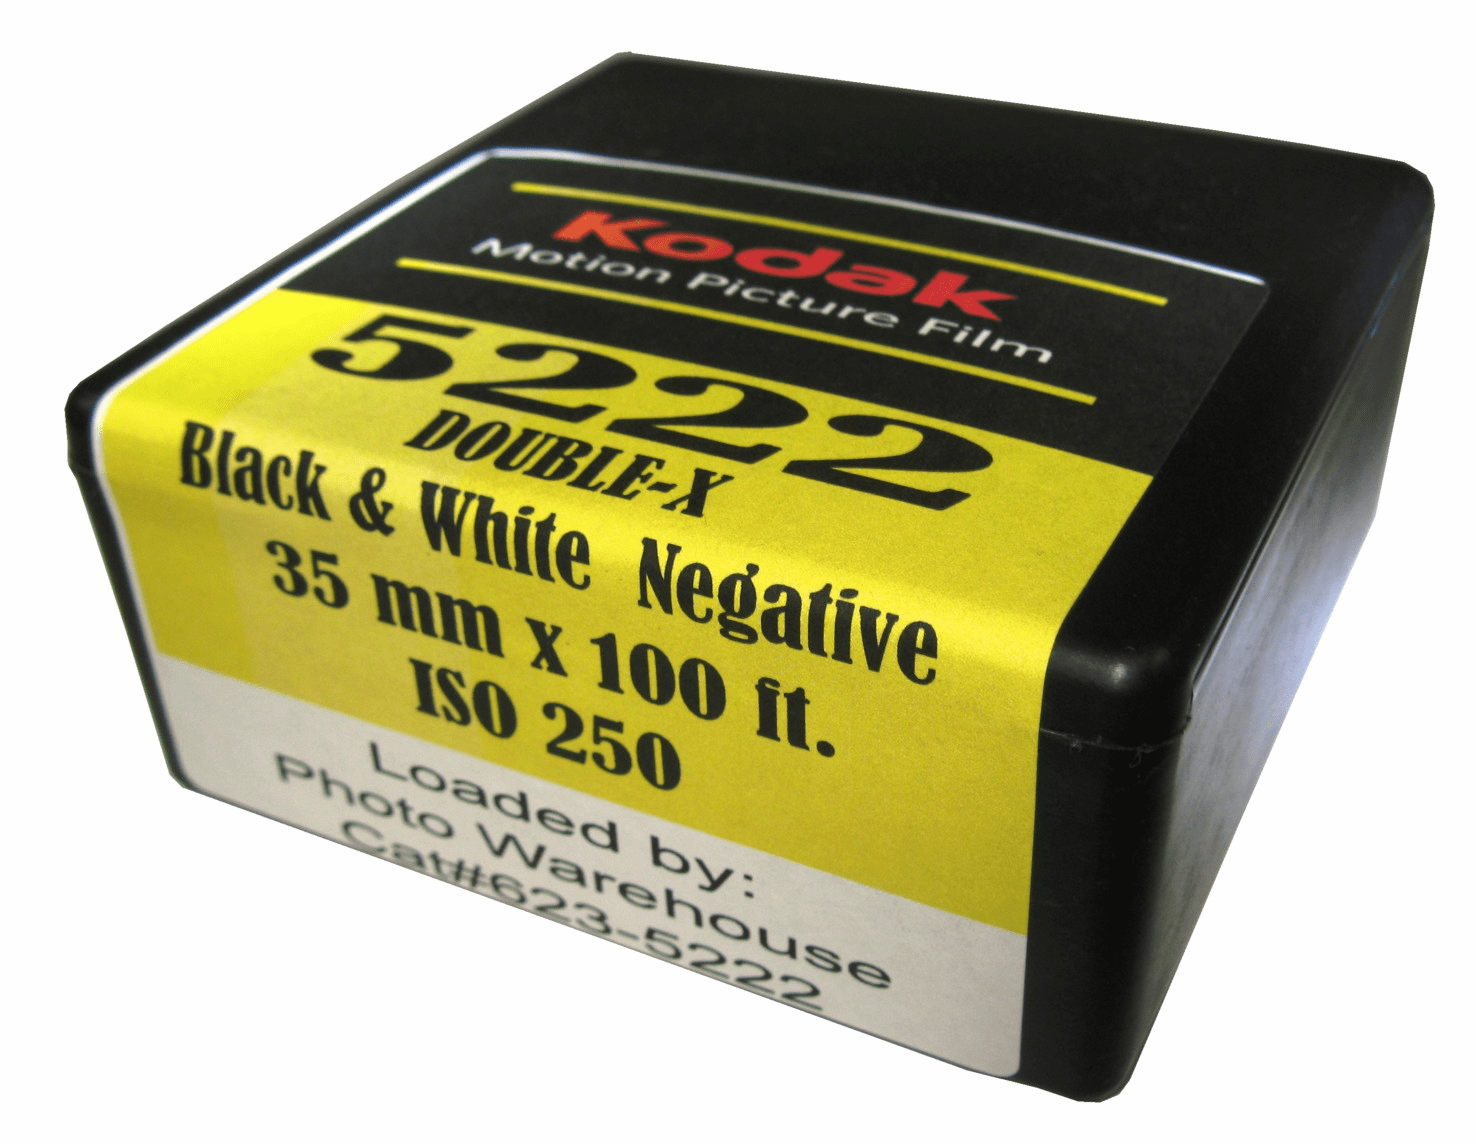 Kodak 5222 Double - X Black & White Film 35mm x 100 ft Roll ISO 250